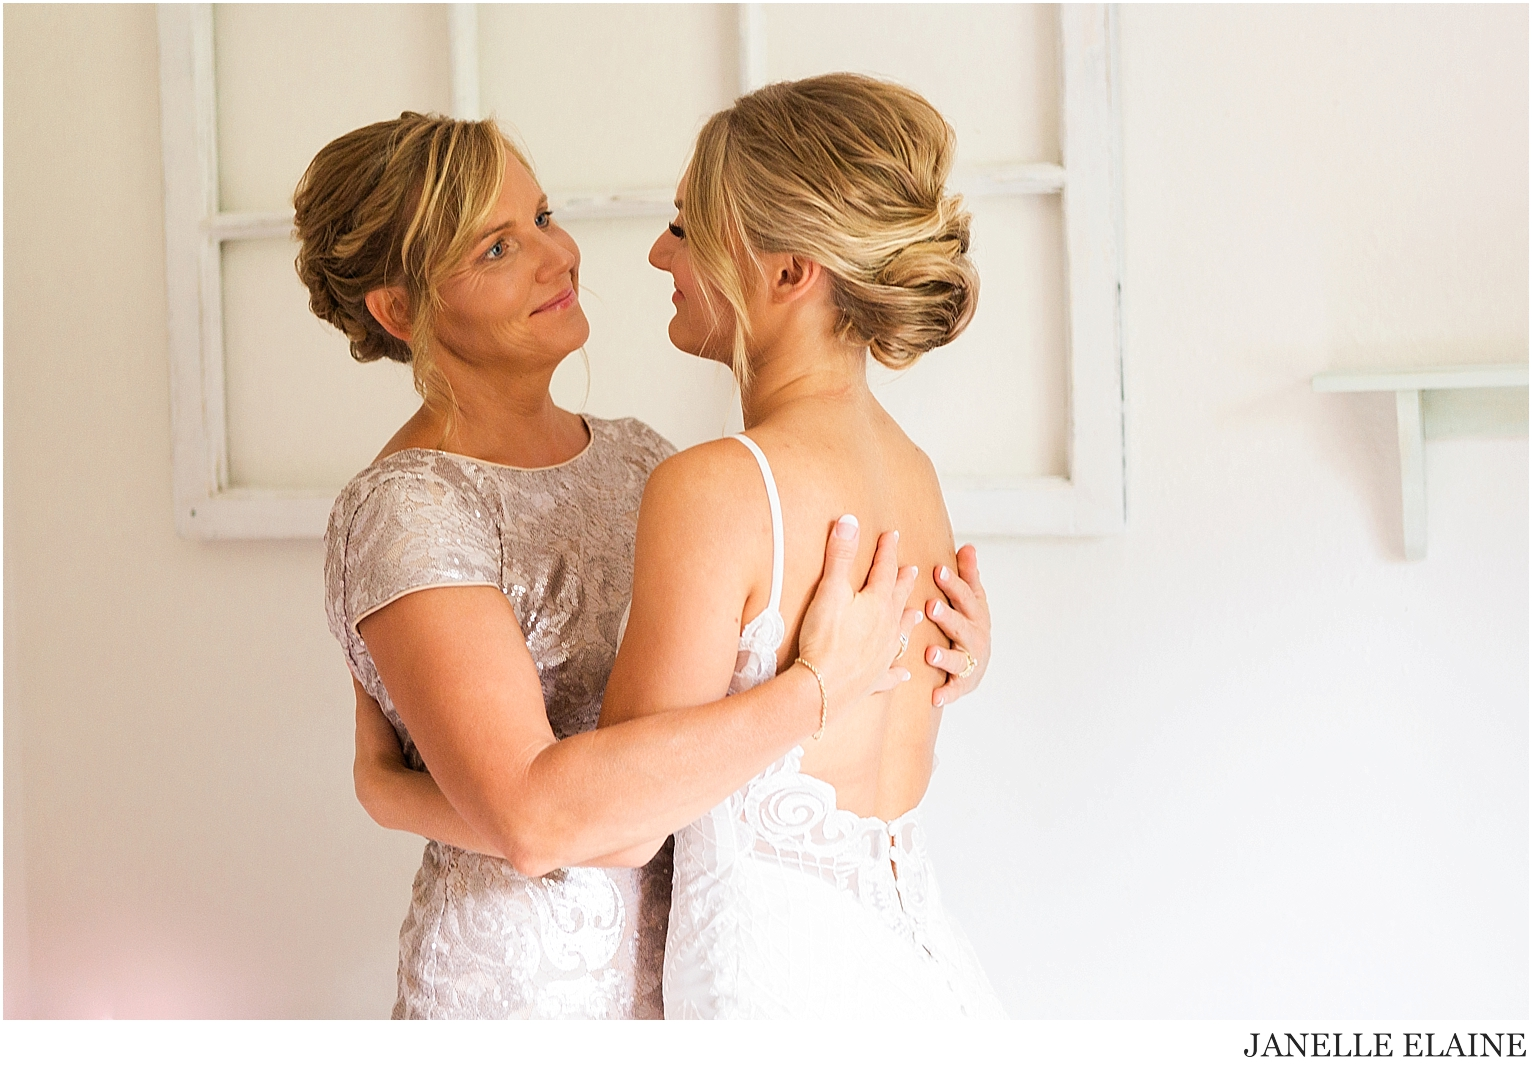 Tricia and Nathan Goddard Wedding-Getting Ready Photos-Janelle Elaine Photography-72.jpg